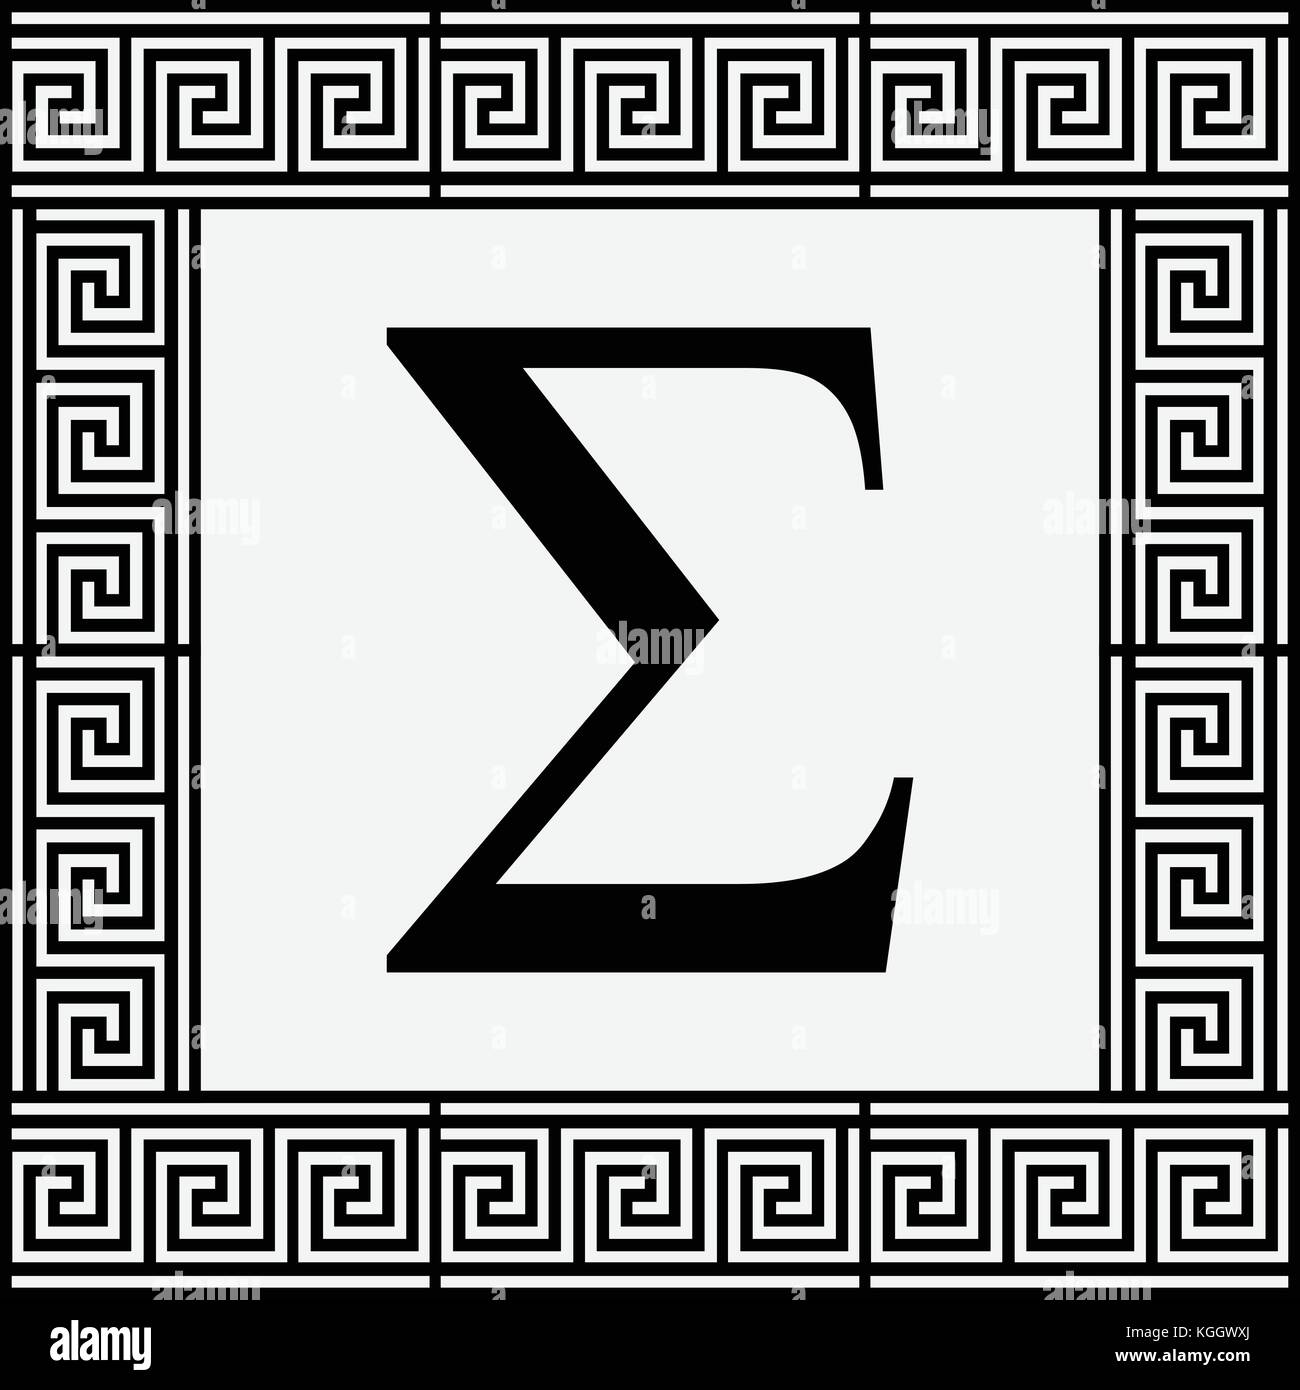 Greek letter sigma stock photos greek letter sigma stock images sigma greek letter icon sigma symbol in ancient greek frame vector illustration biocorpaavc Choice Image